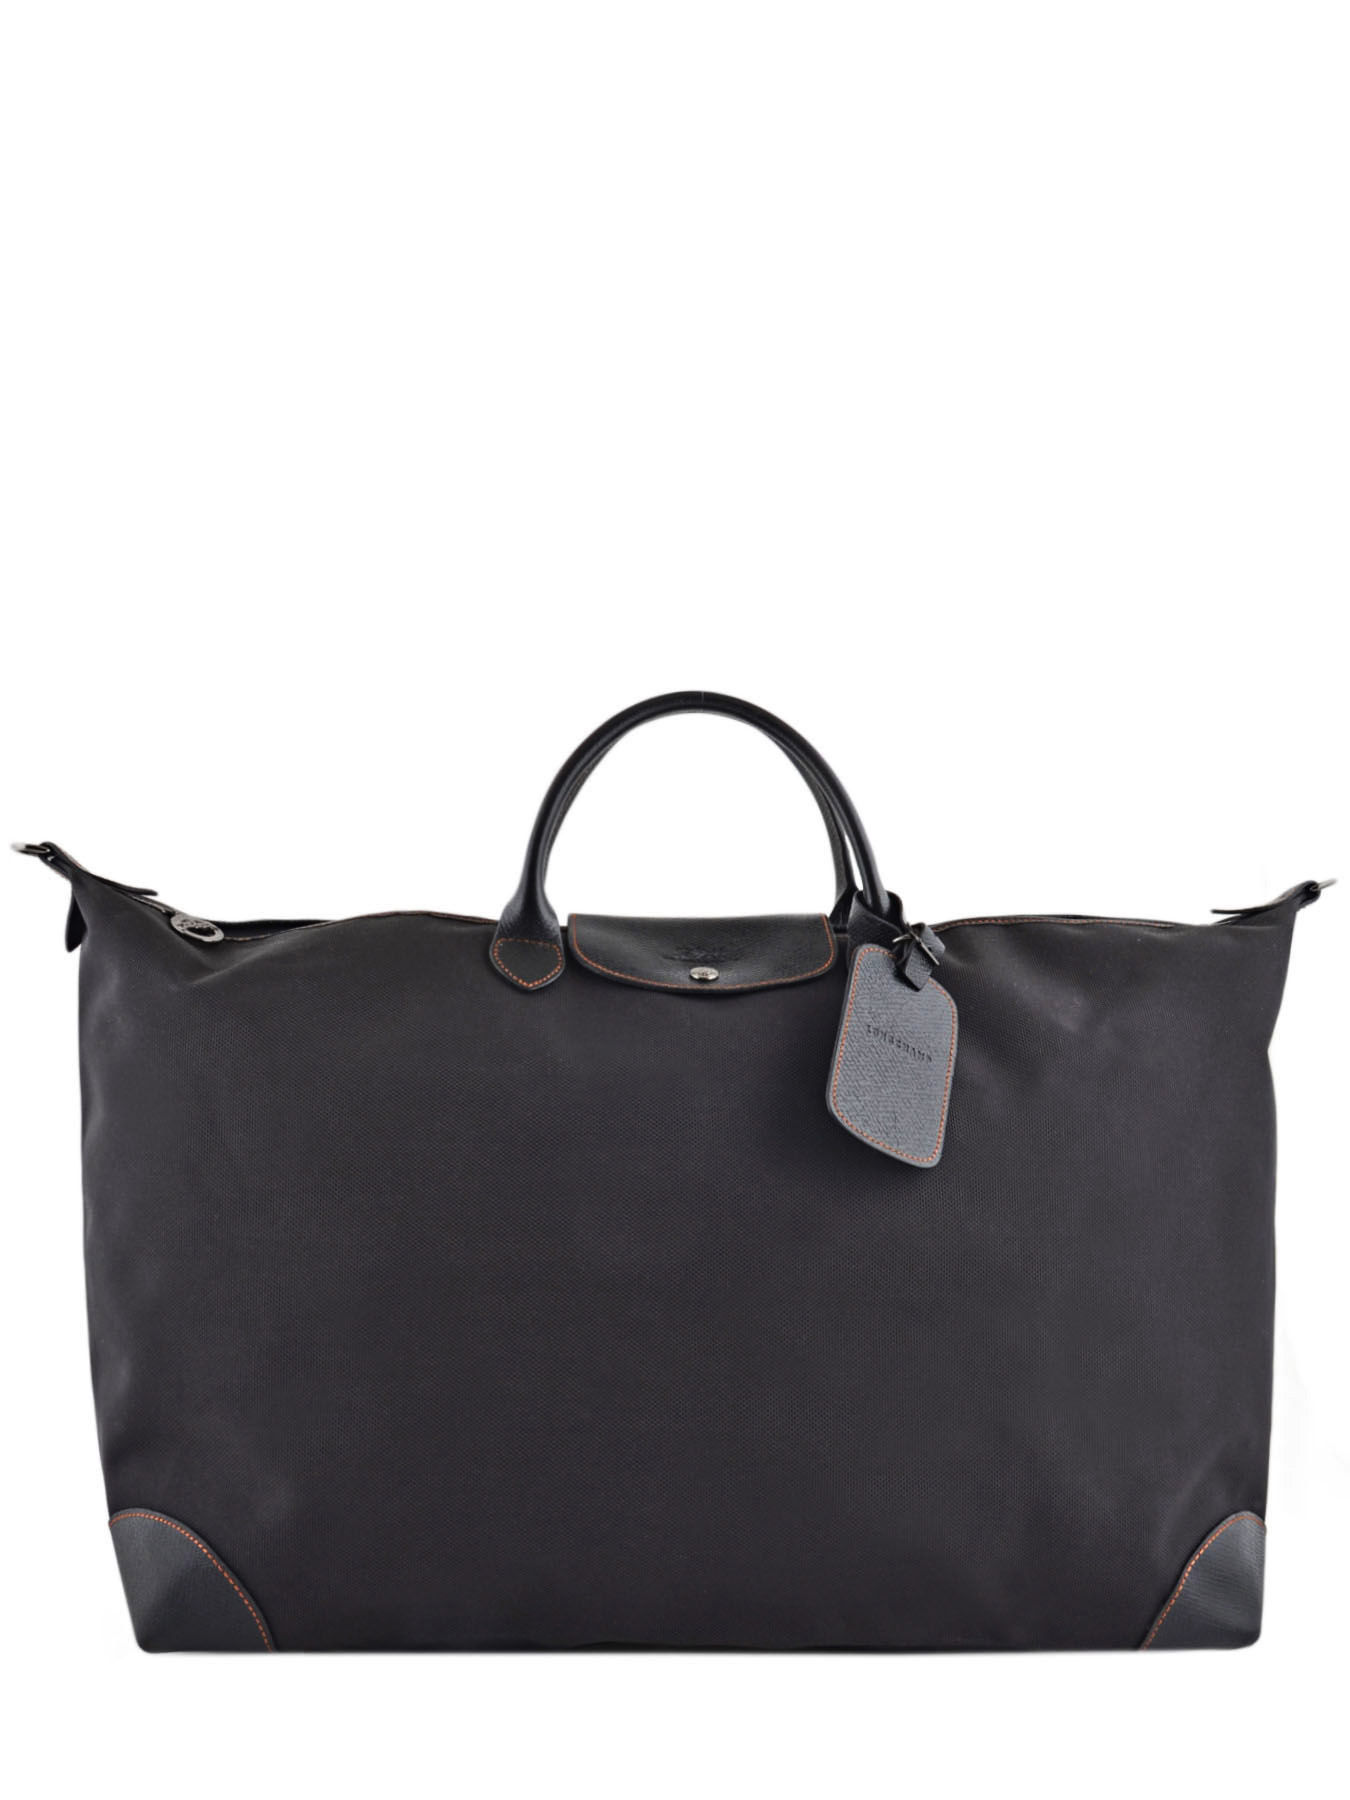 Longchamp Boxford Travel bag Black · Longchamp Boxford Travel bag Black ... 27cfa45570764